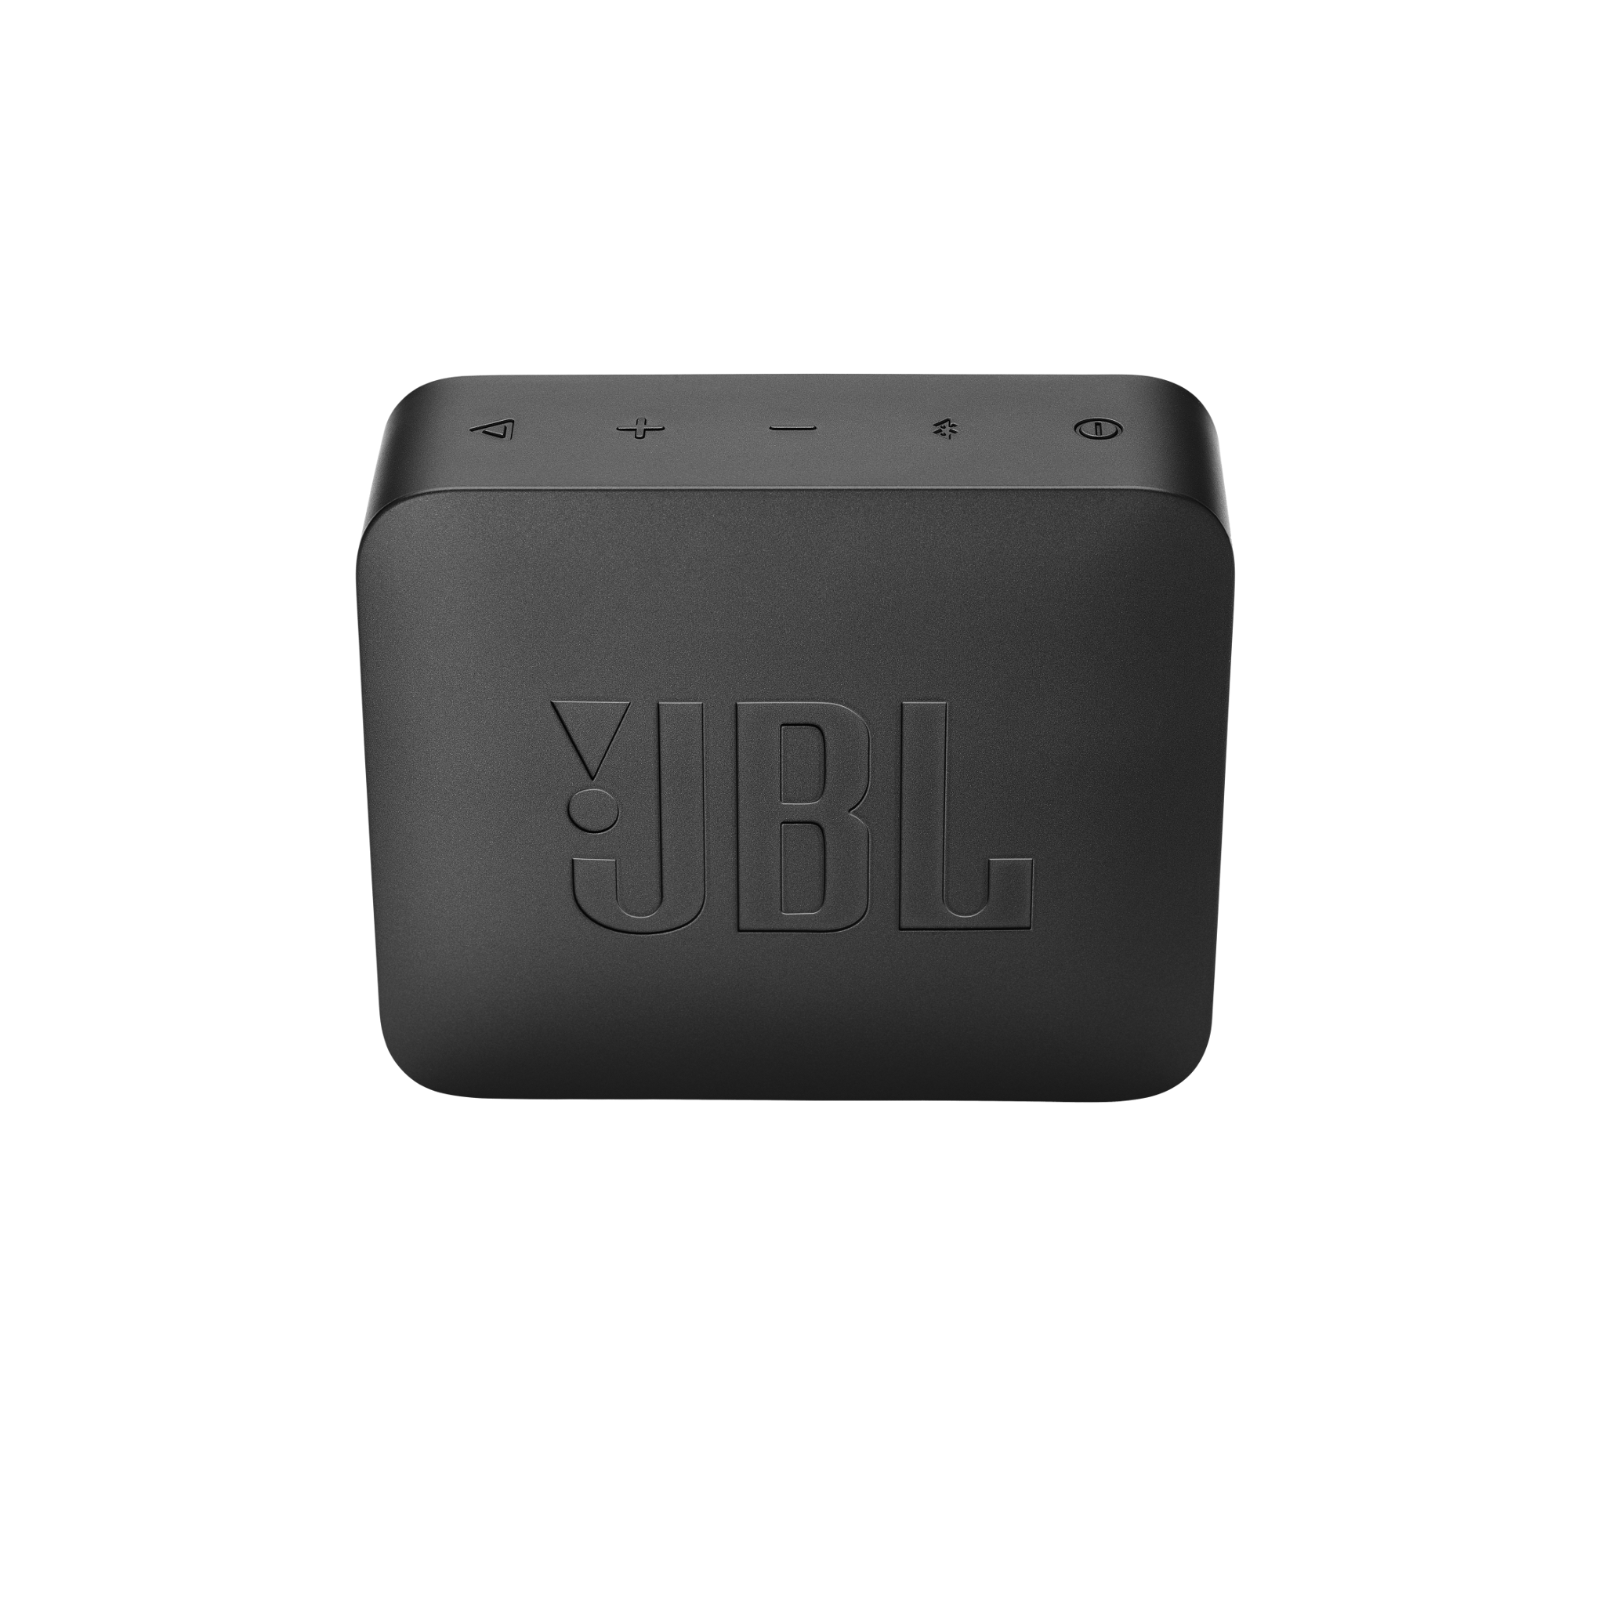 JBL GO2+ - Black - Portable Bluetooth speaker - Back